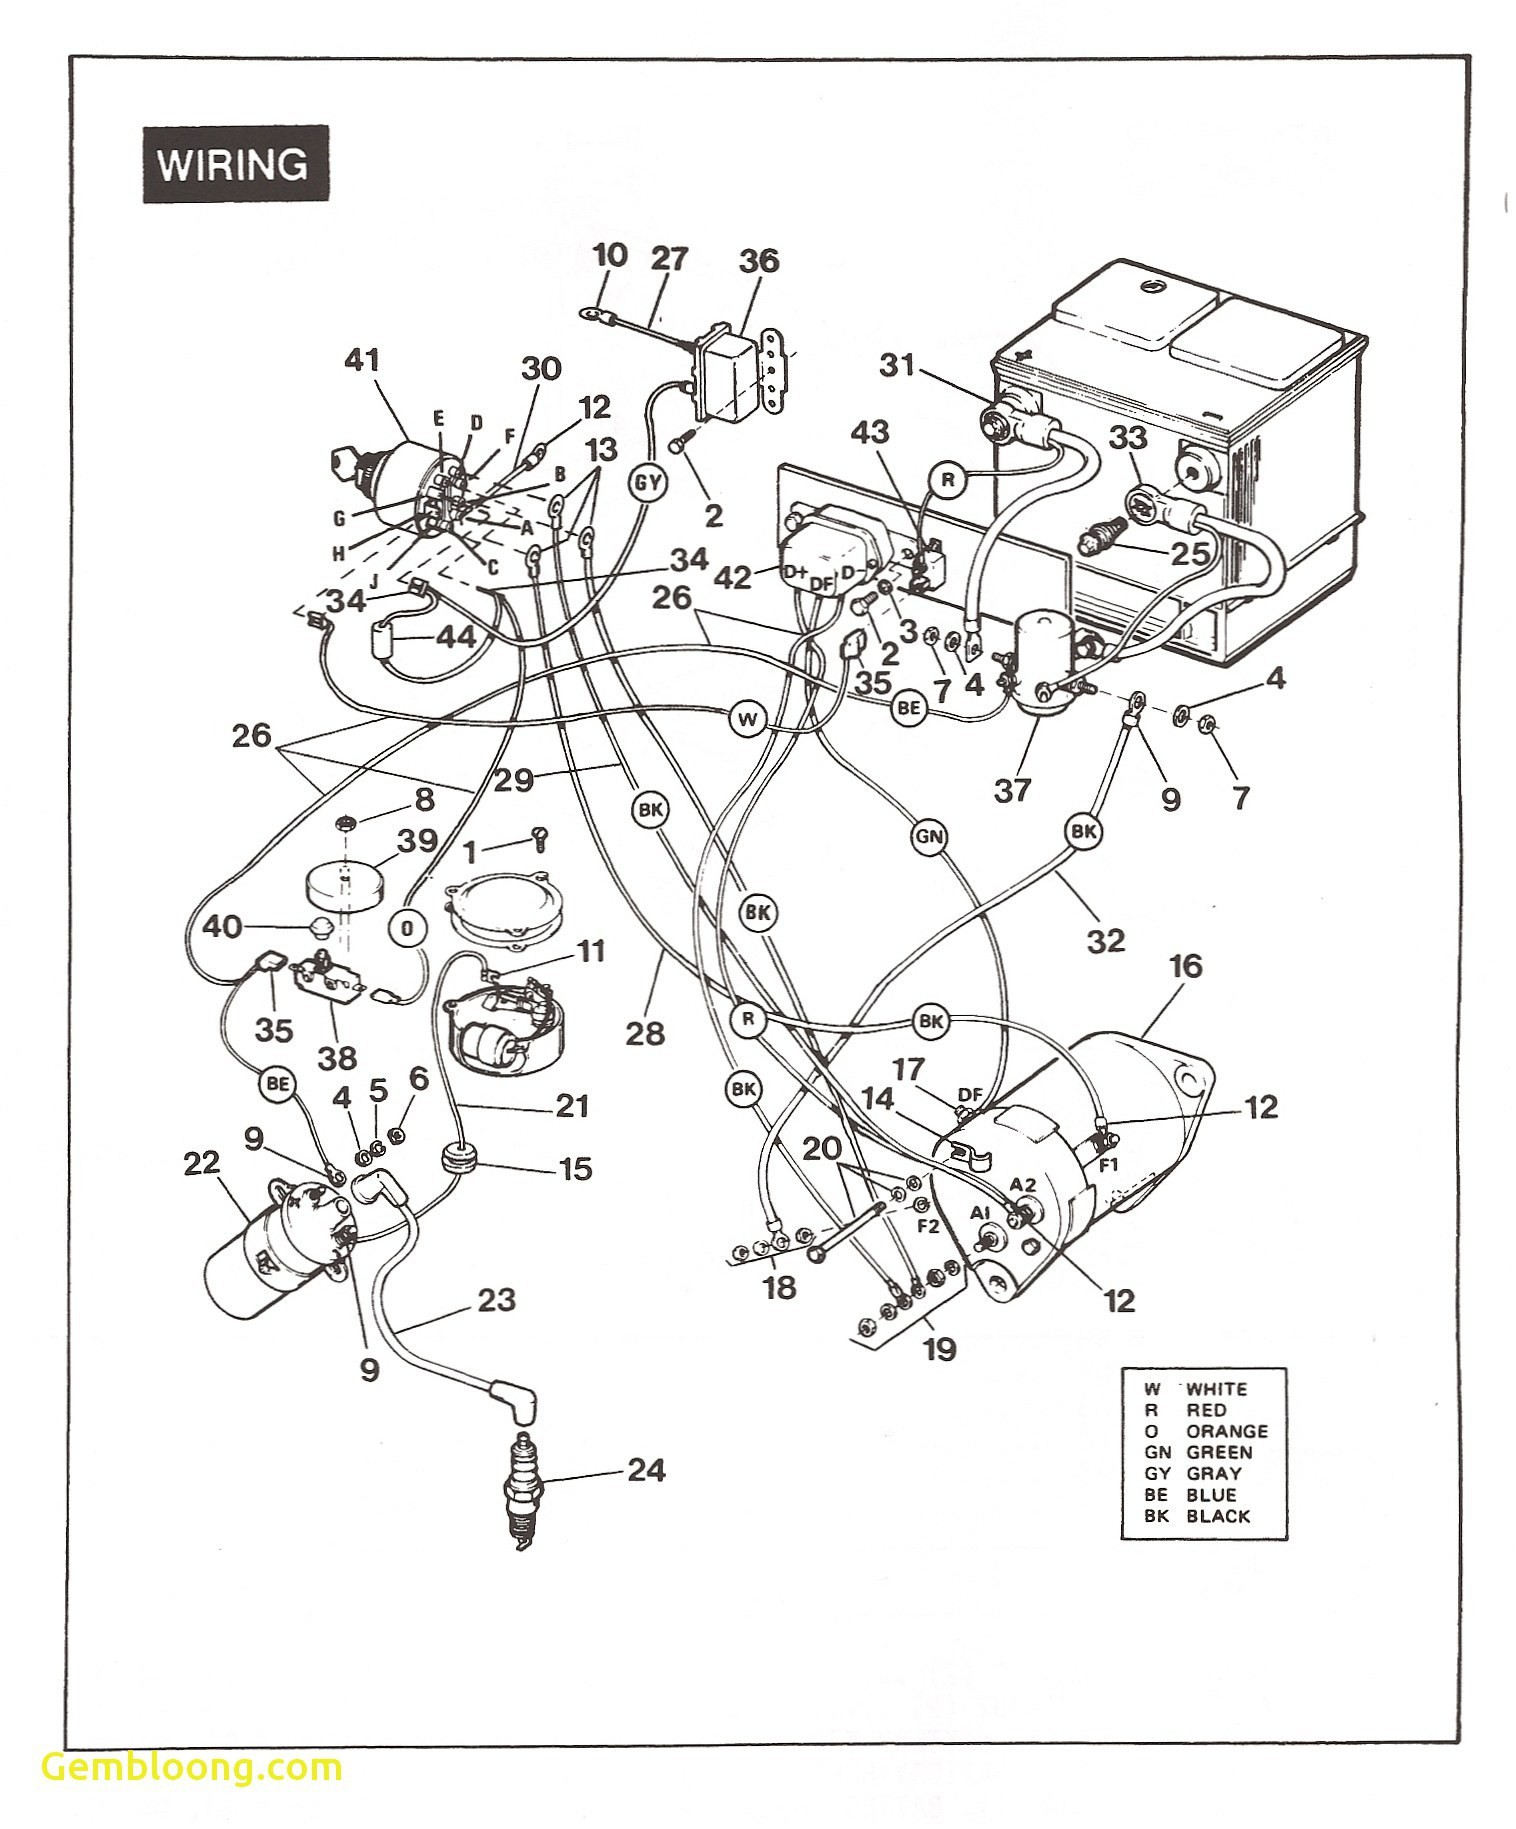 1989 columbia par car wiring diagram